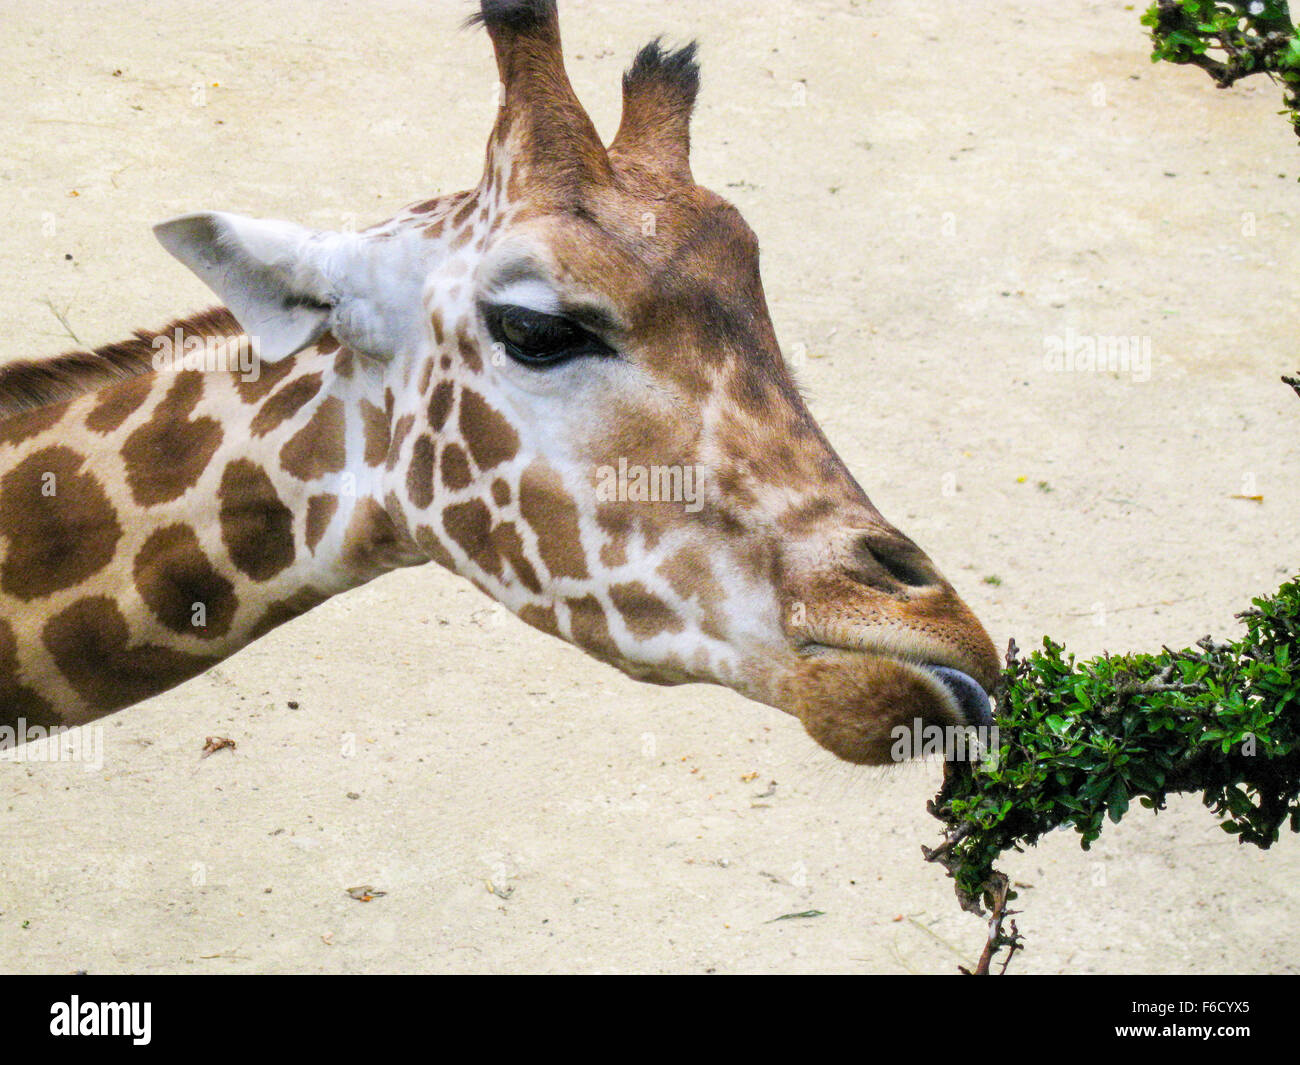 Close up of giraffe eating leaves Stock Photo